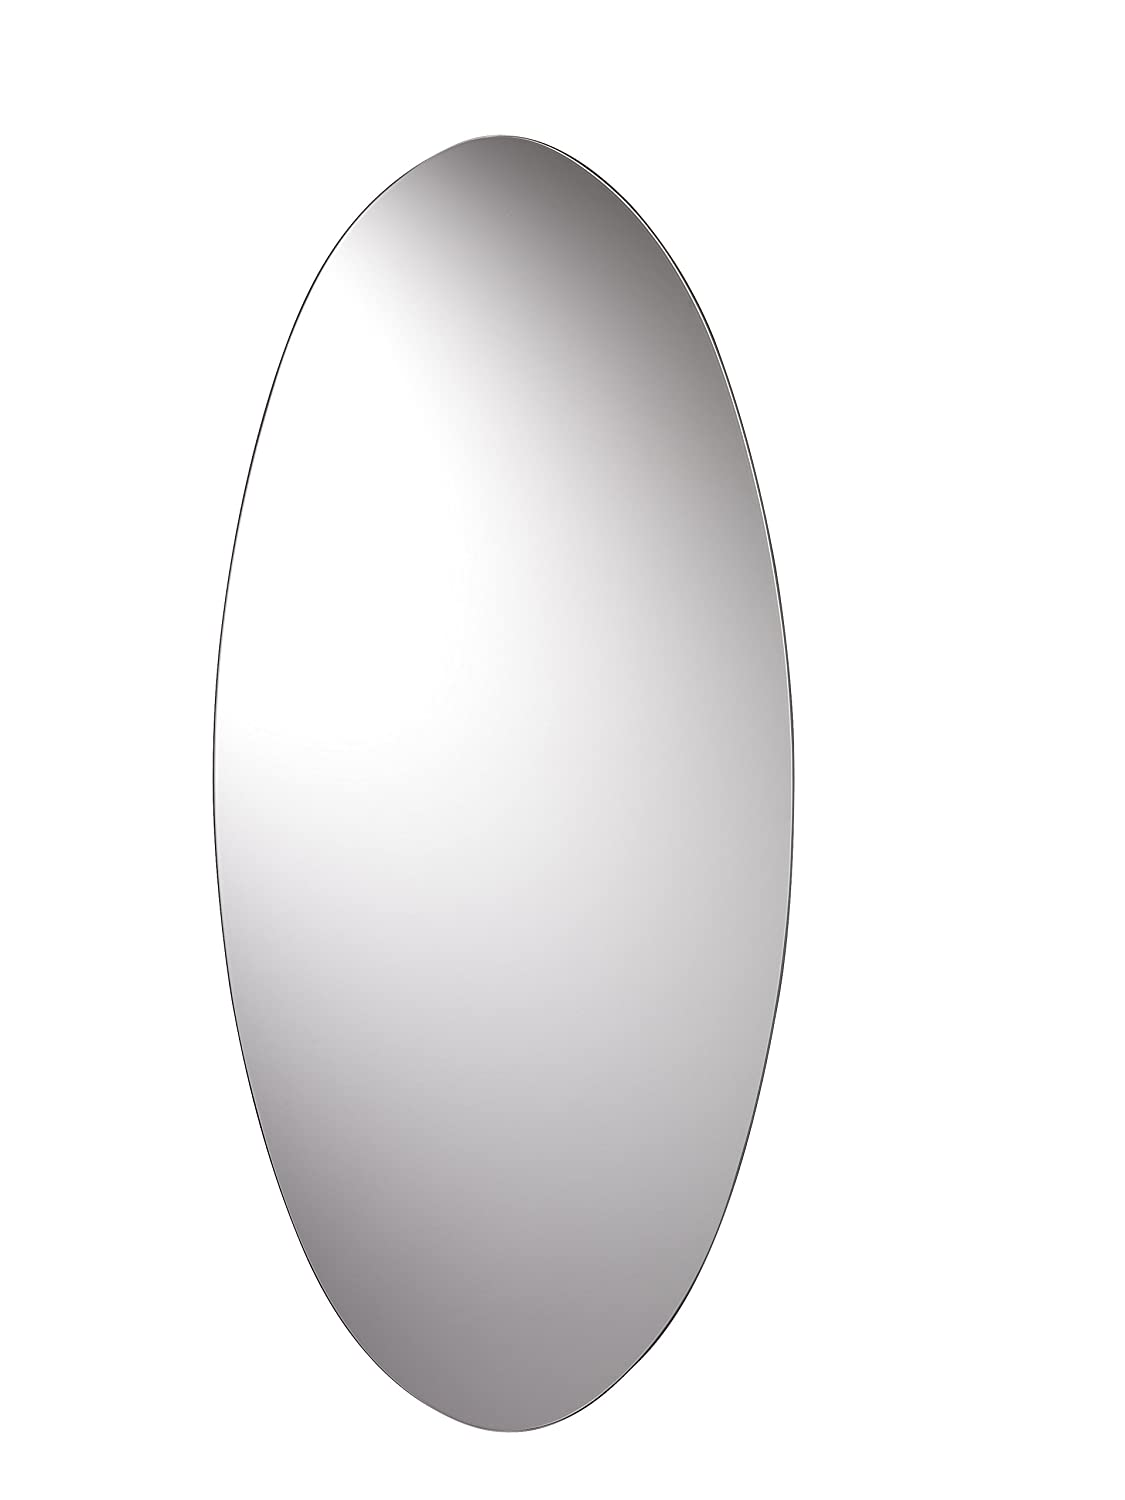 Croydex Devoke Double Layer Wall Mirror 28-Inch x 20-Inch with Shelf and Hang 'N' Lock Fitting System MM700300AZ